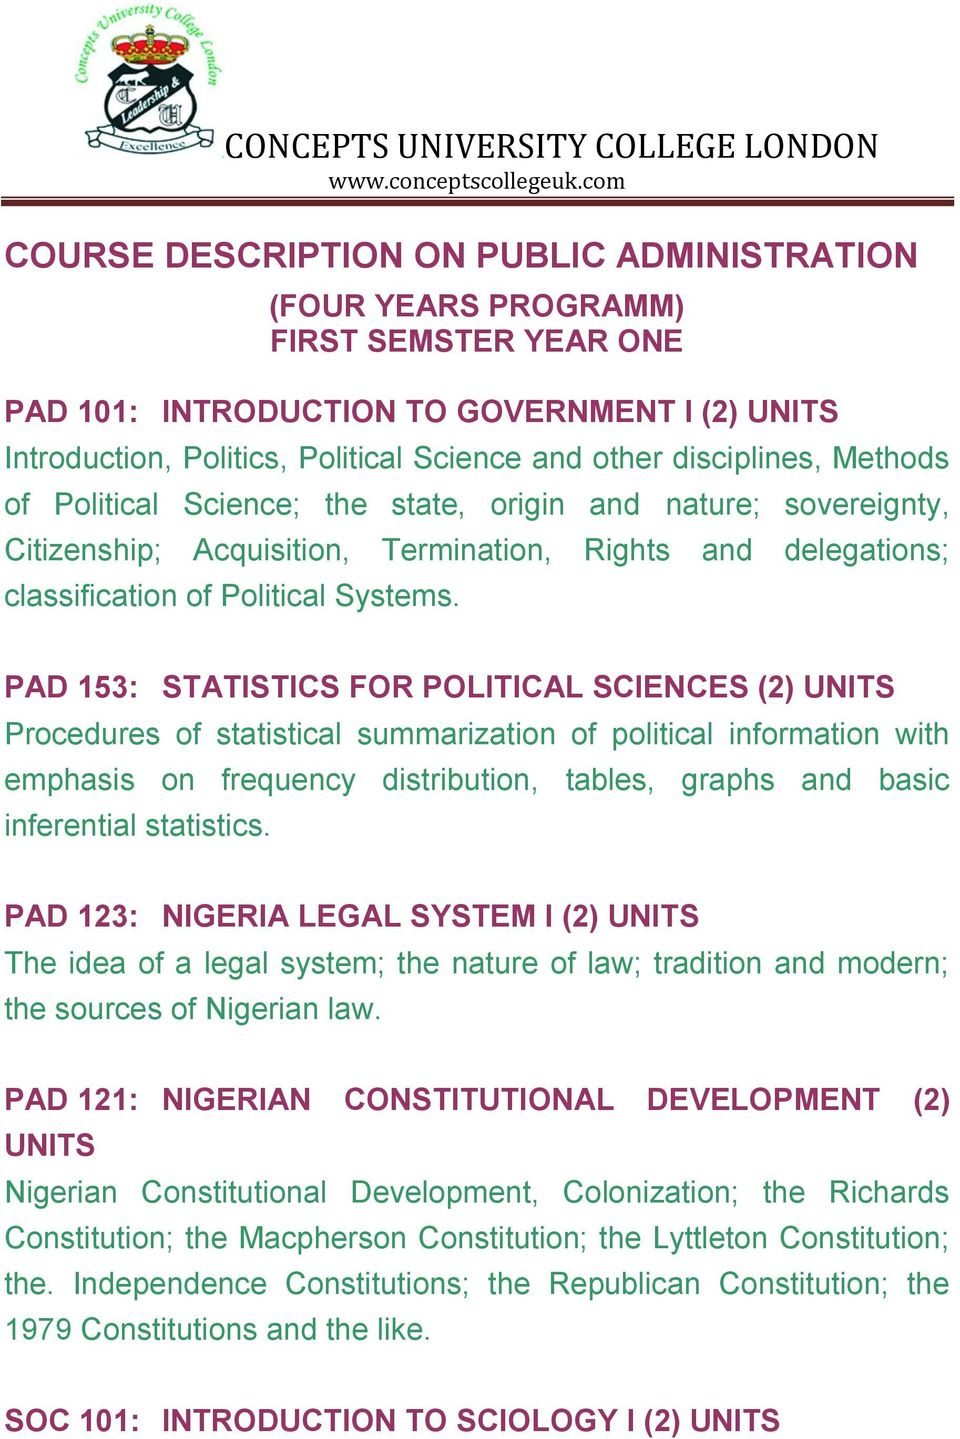 PAD 153: STATISTICS FOR POLITICAL SCIENCES (2) UNITS Procedures of statistical summarization of political information with emphasis on frequency distribution, tables, graphs and basic inferential